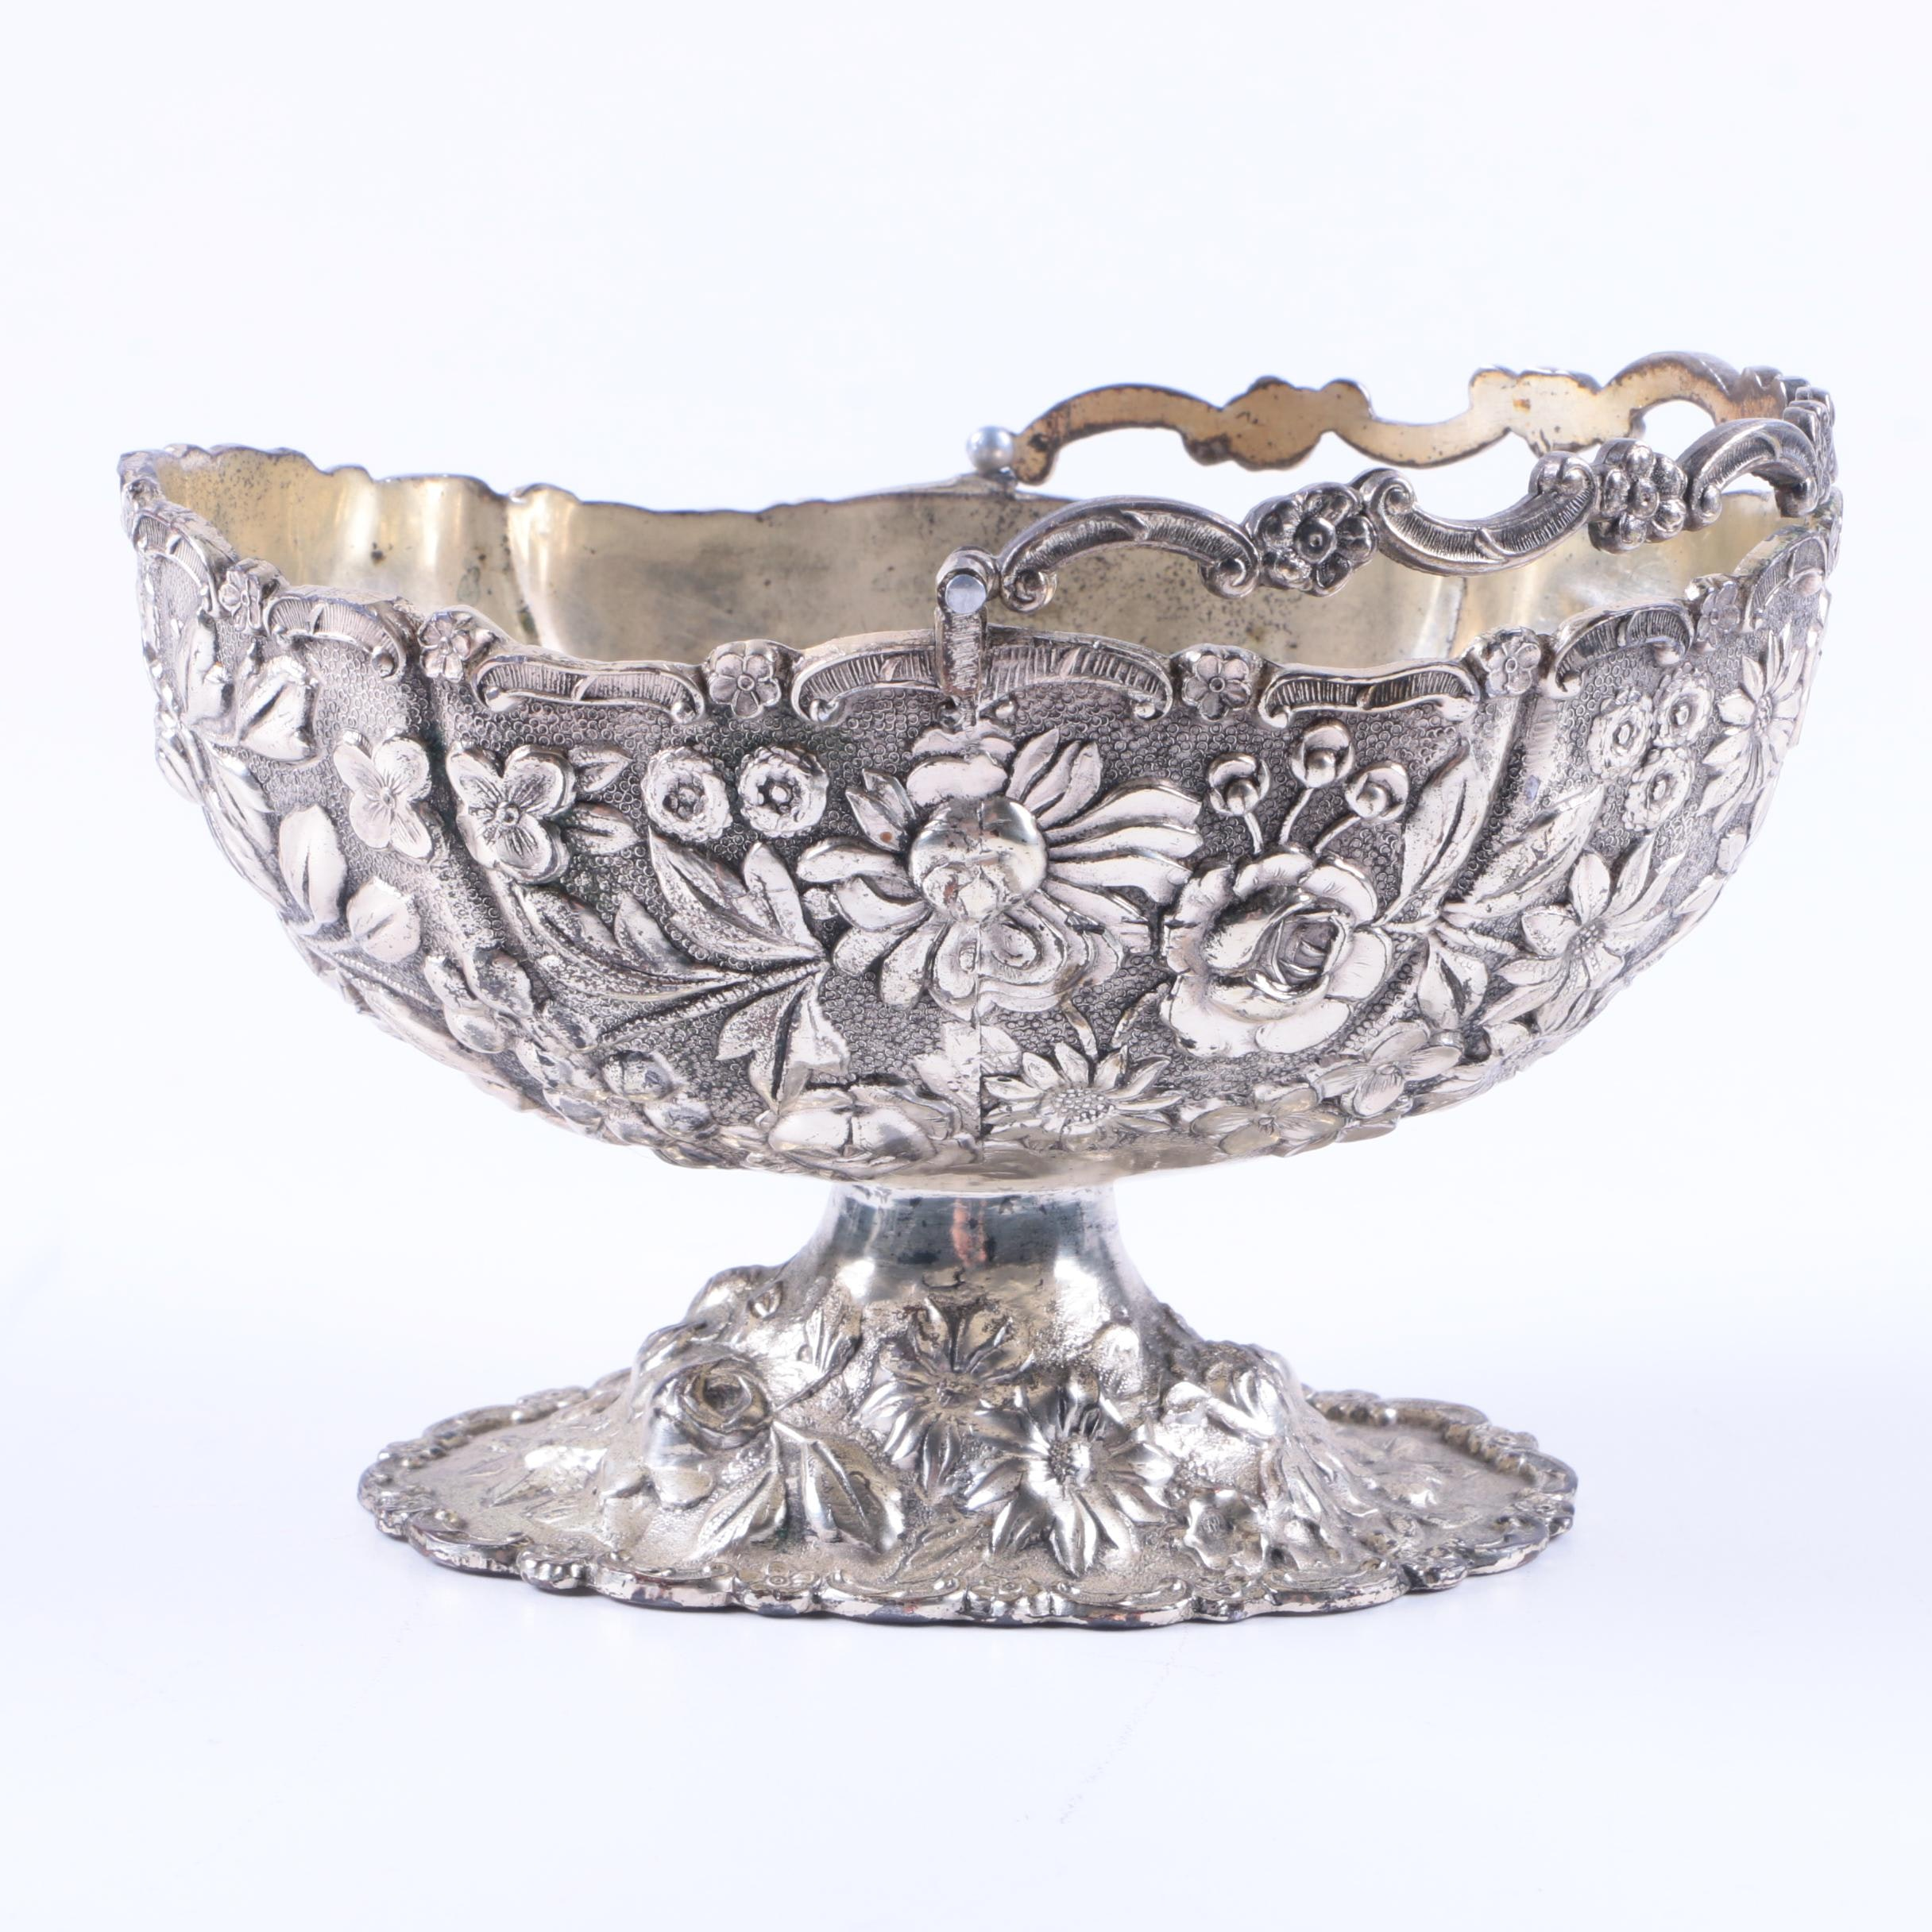 Japanese Chased and Repoussé Silver Plate Basket